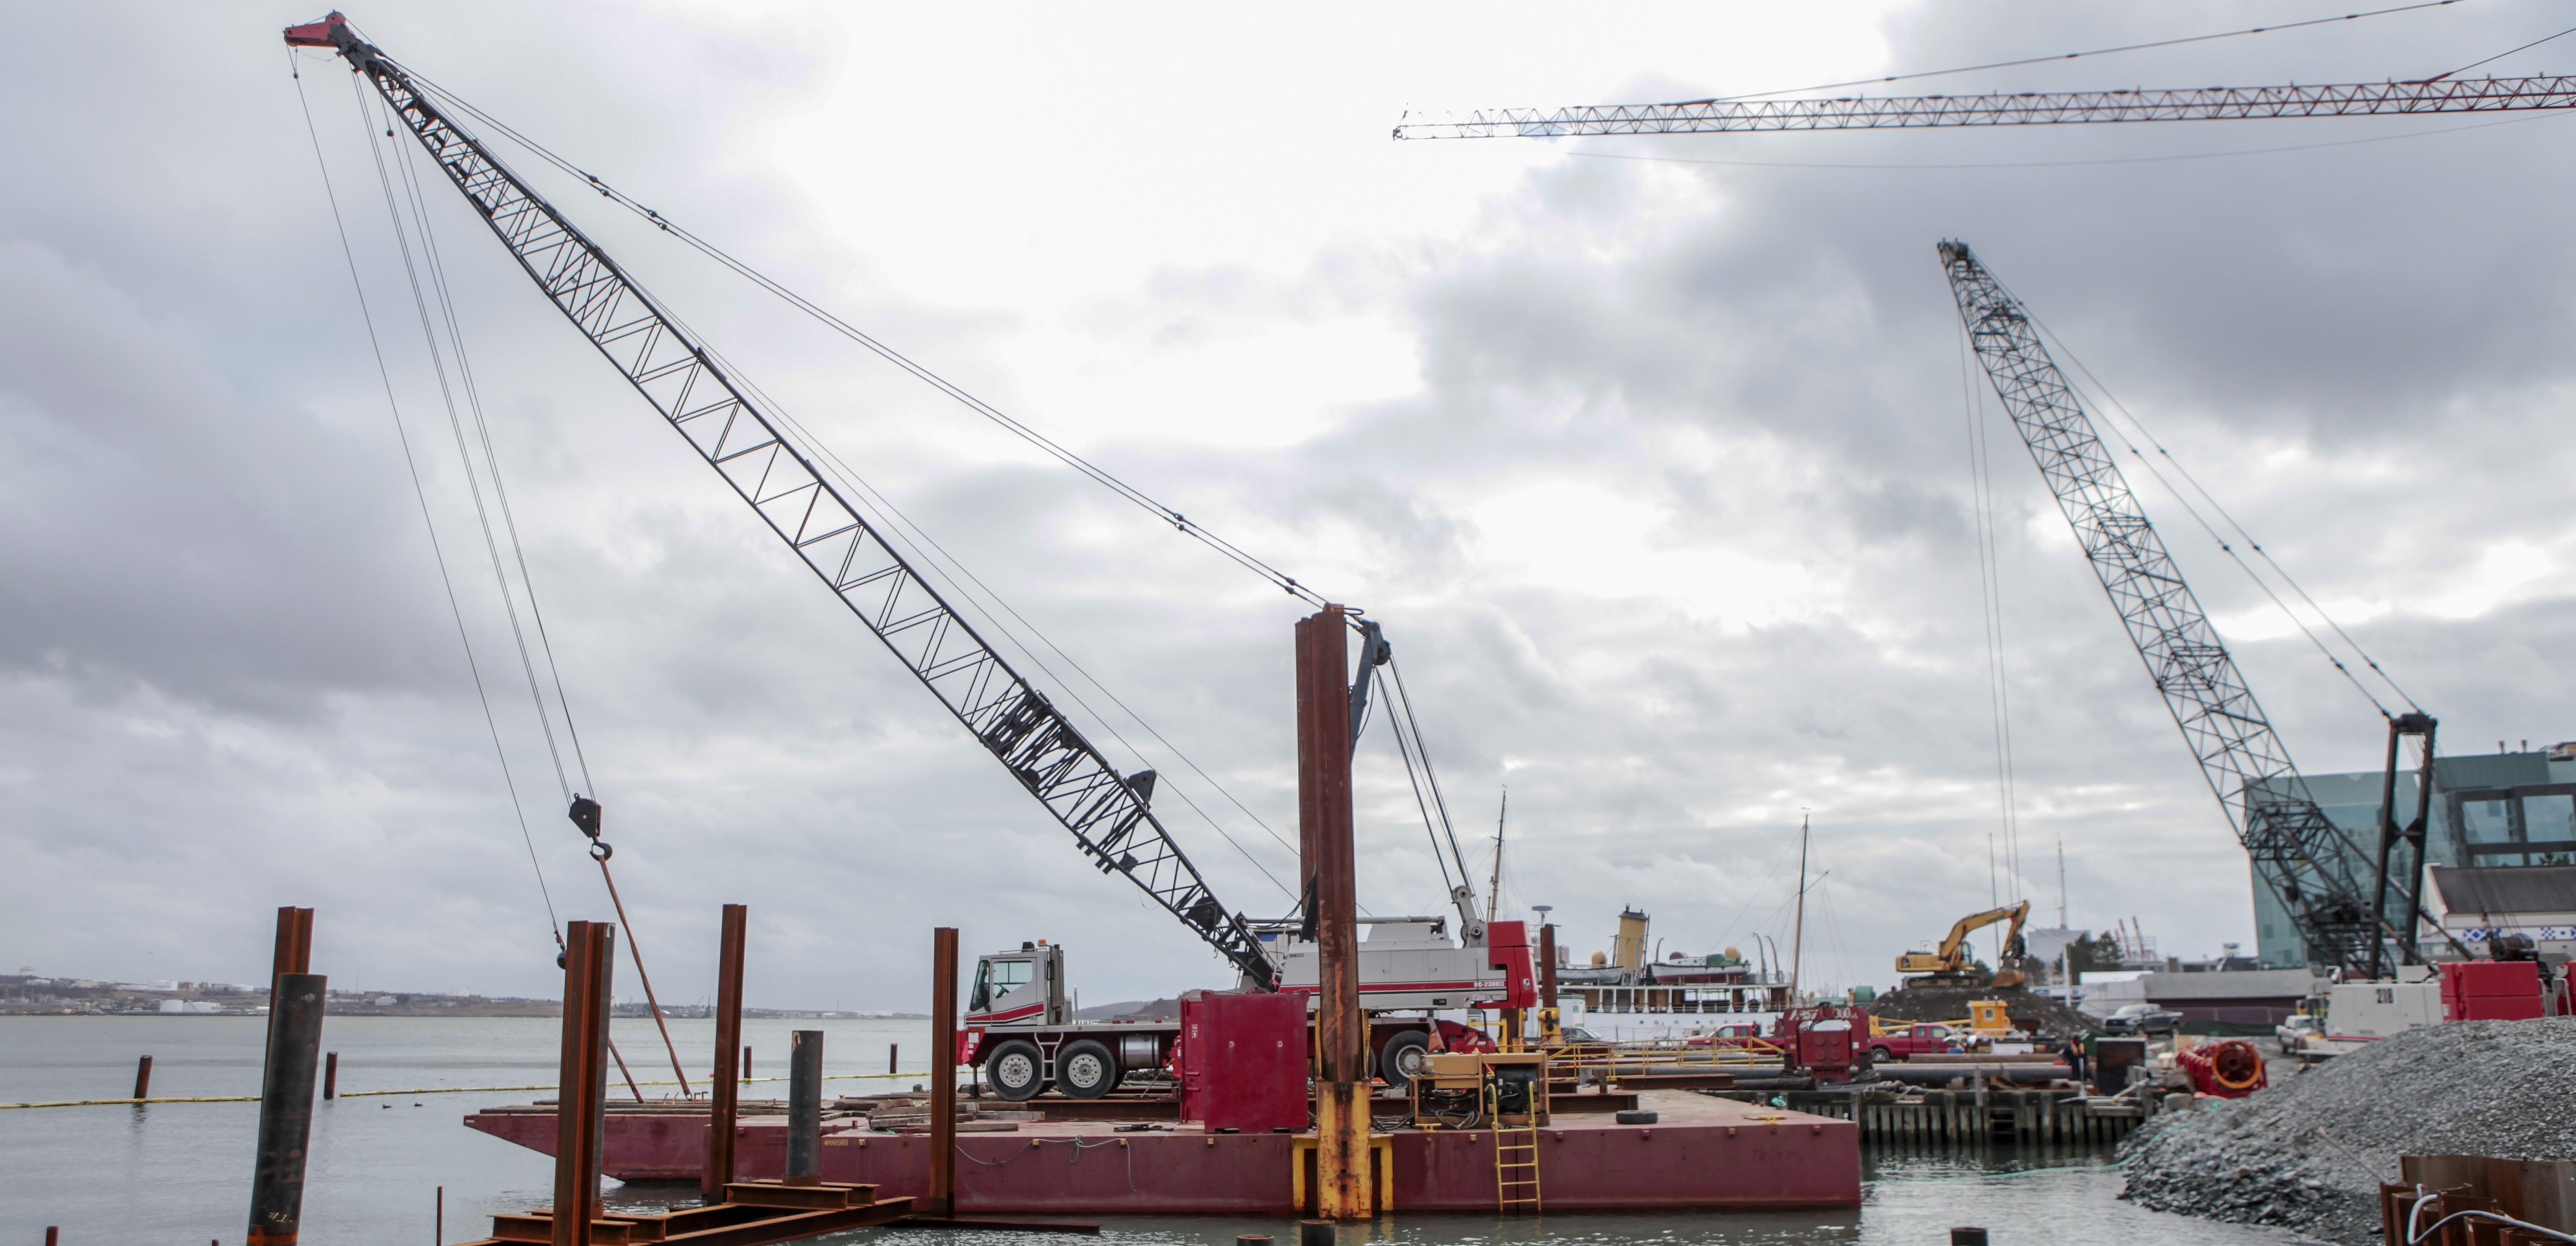 Image of construction crane on Halifax waterfront.